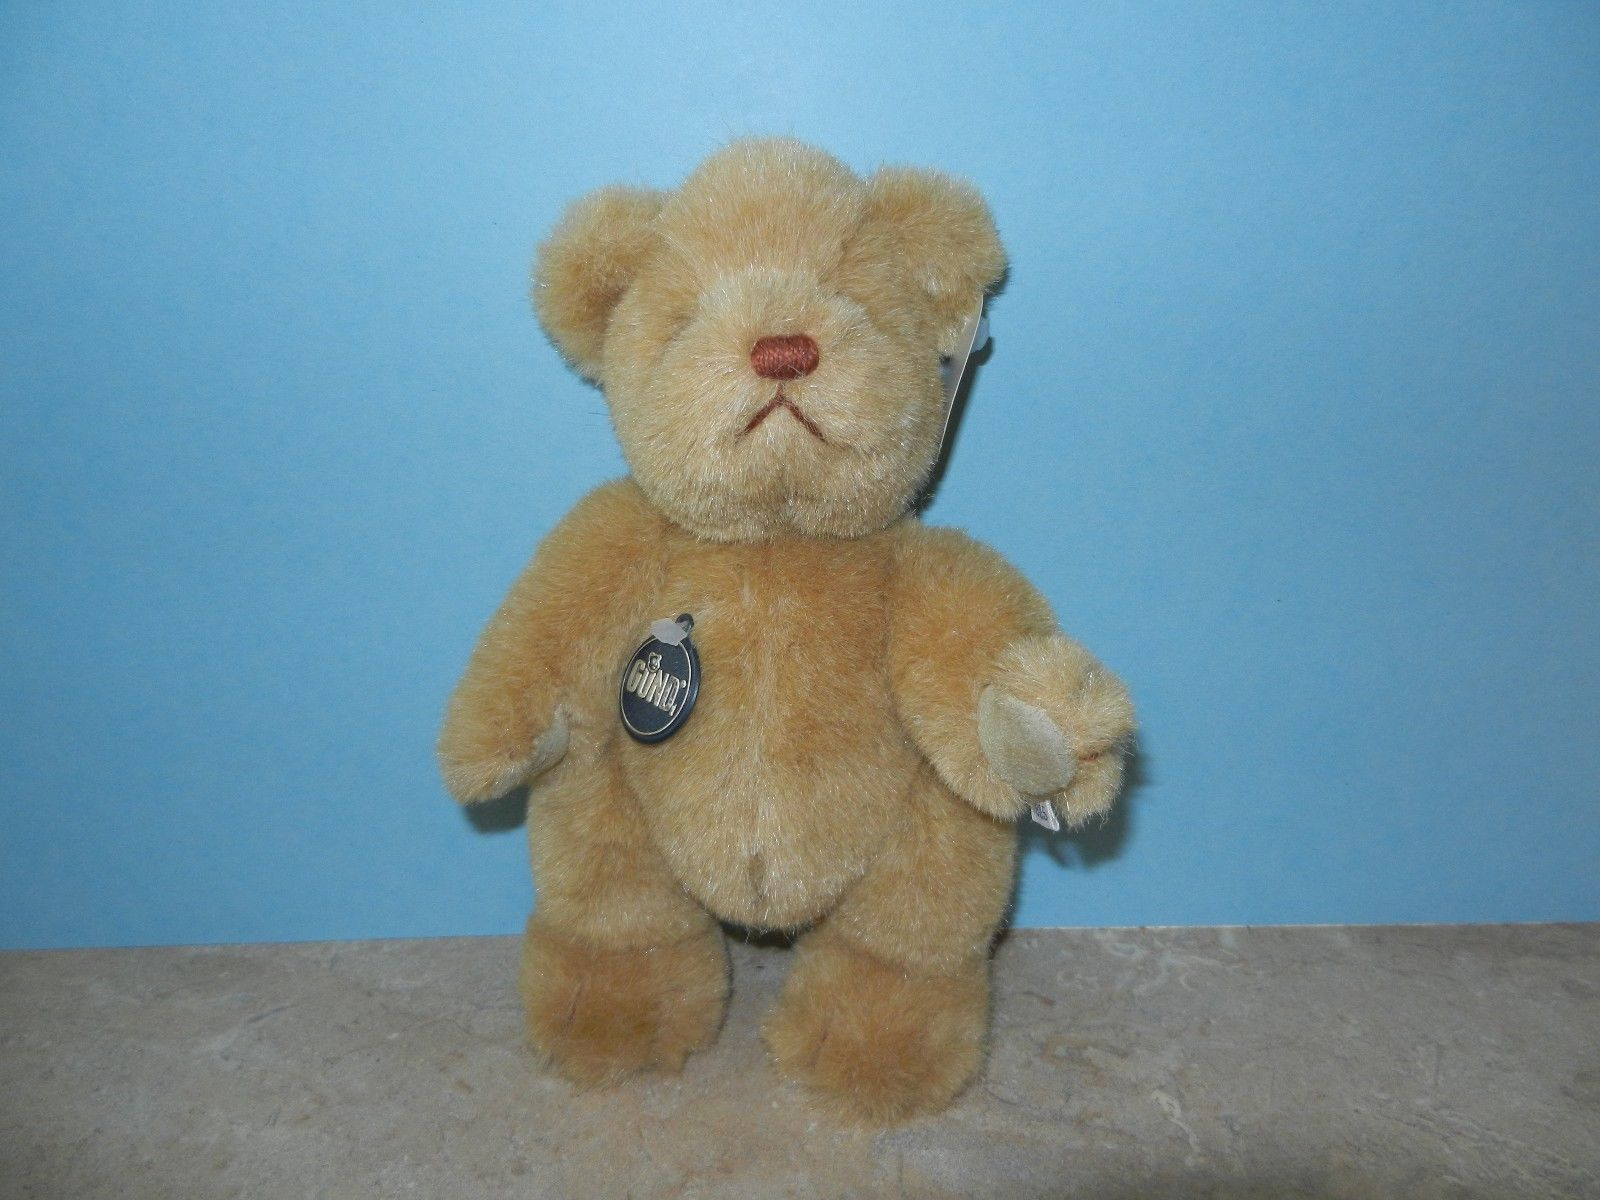 Primary image for Gund Stuffed Plush Teddy Bear ~ Gundy 1985 ~ MWT Limited Edition Mint with Tags